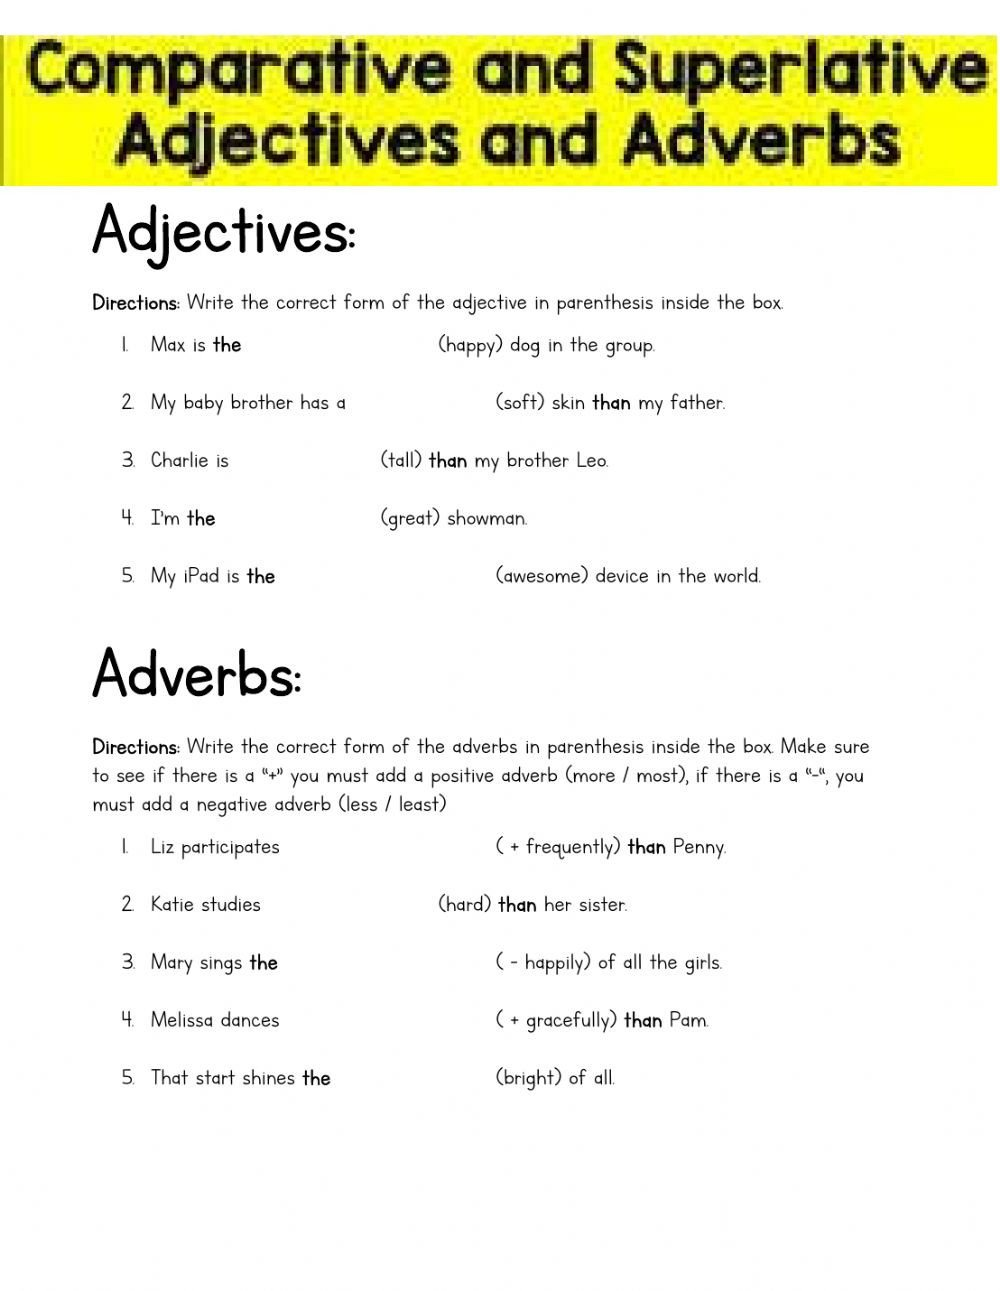 parative and Superlative Adjectives and Adverbs 4th grade pd lm